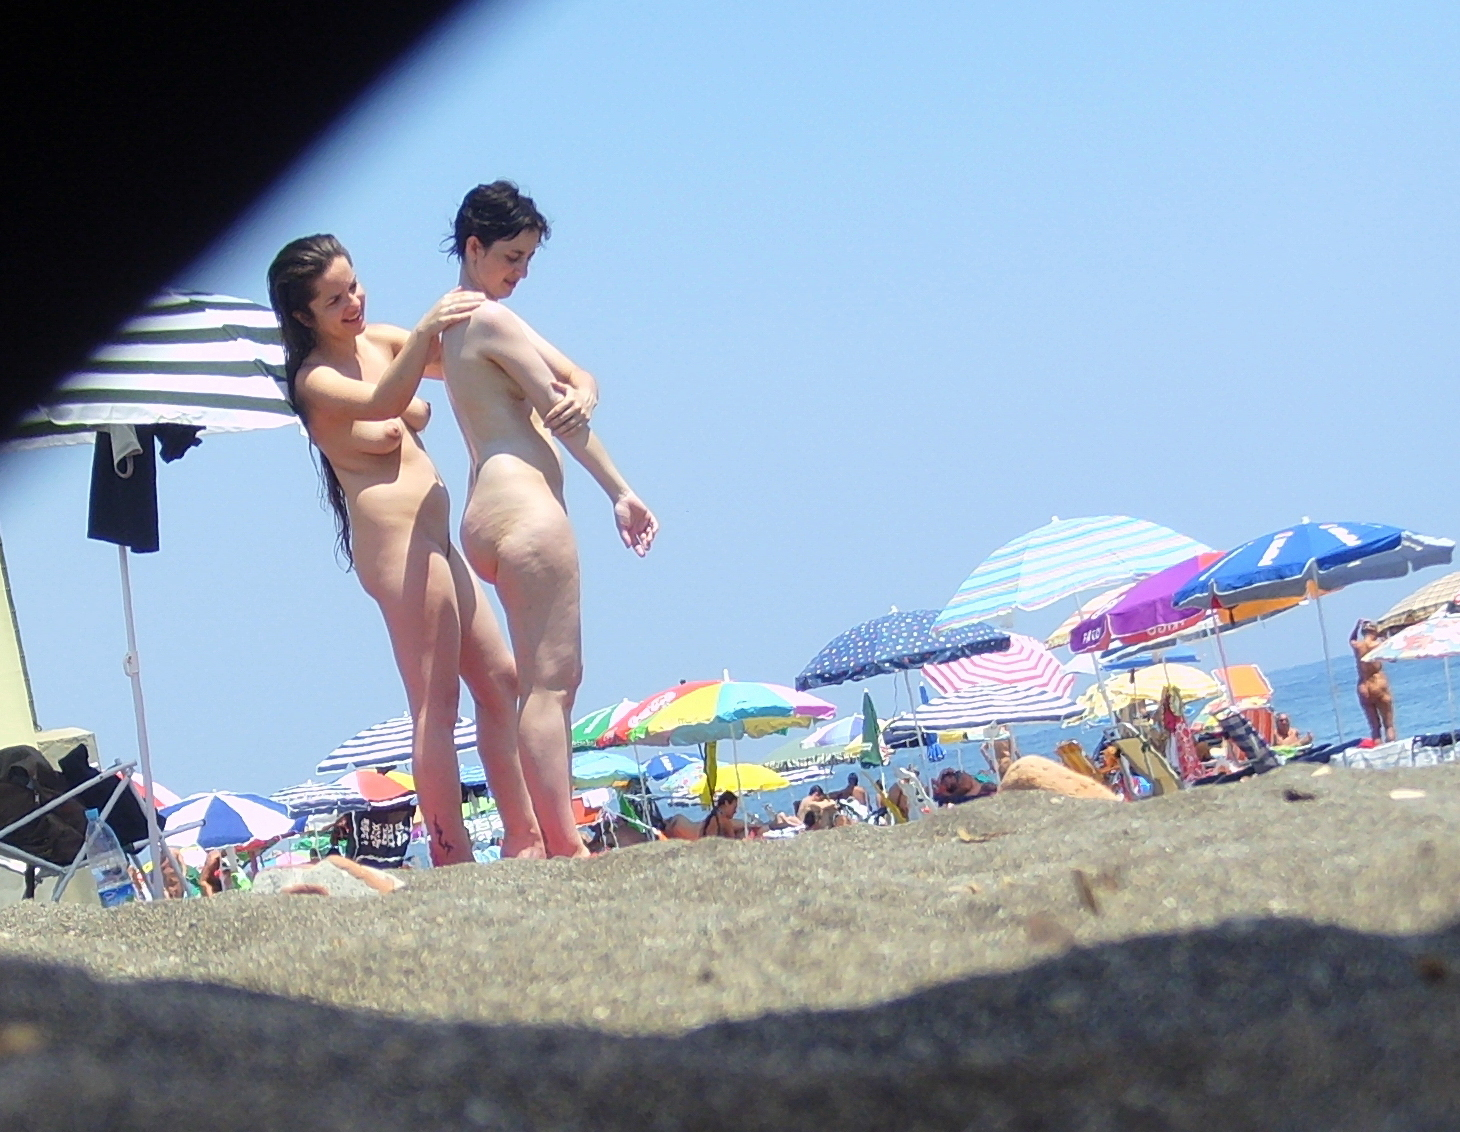 https://voyeurpapa.com/wp-content/uploads/2016/12/Nudists-family-nude-beach-64.jpg